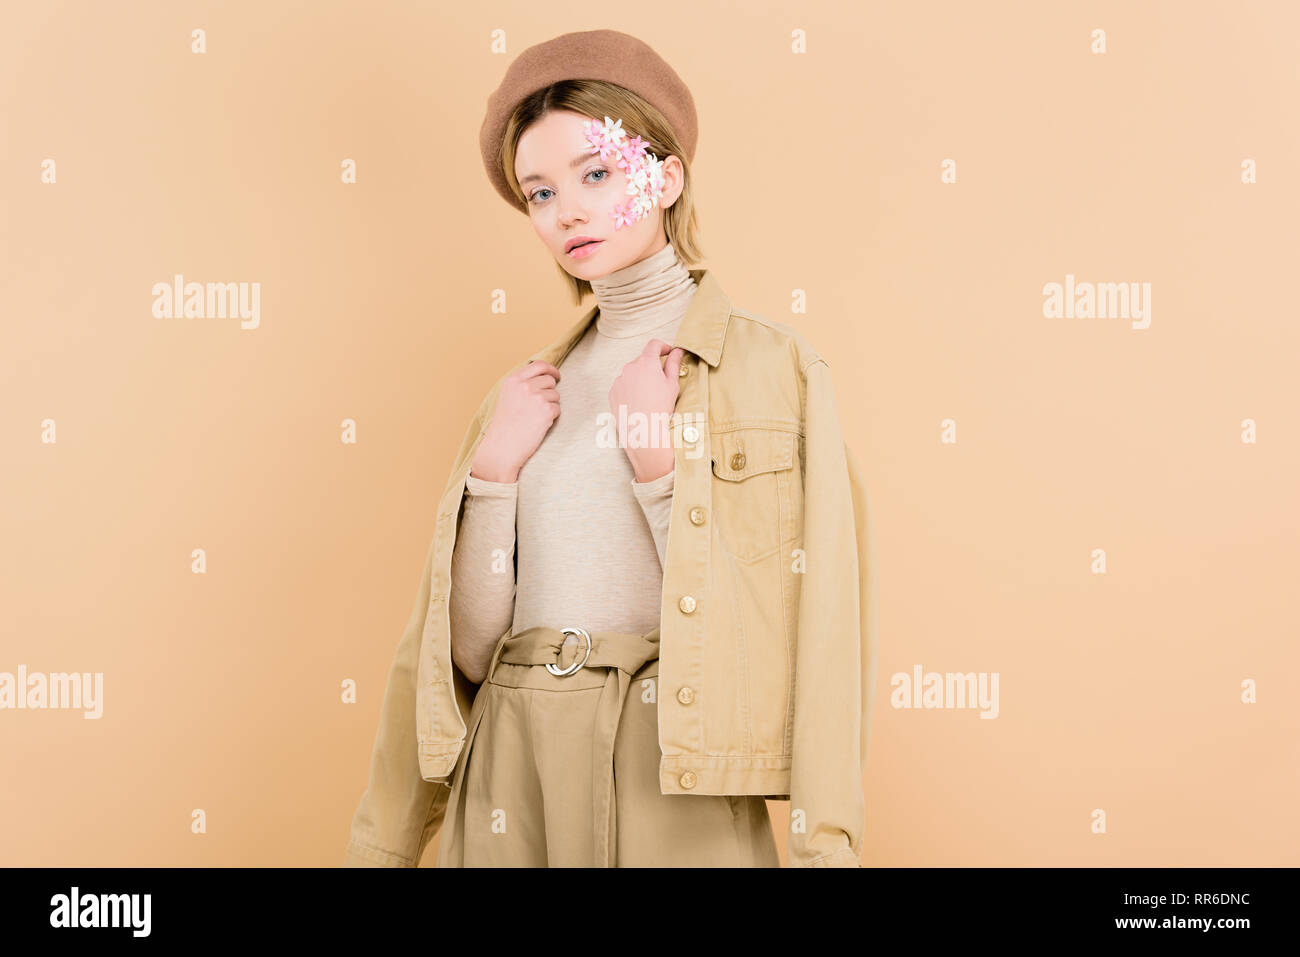 bc214c077e7c8 woman with flowers on face wearing beret and standing isolated on beige -  Stock Image